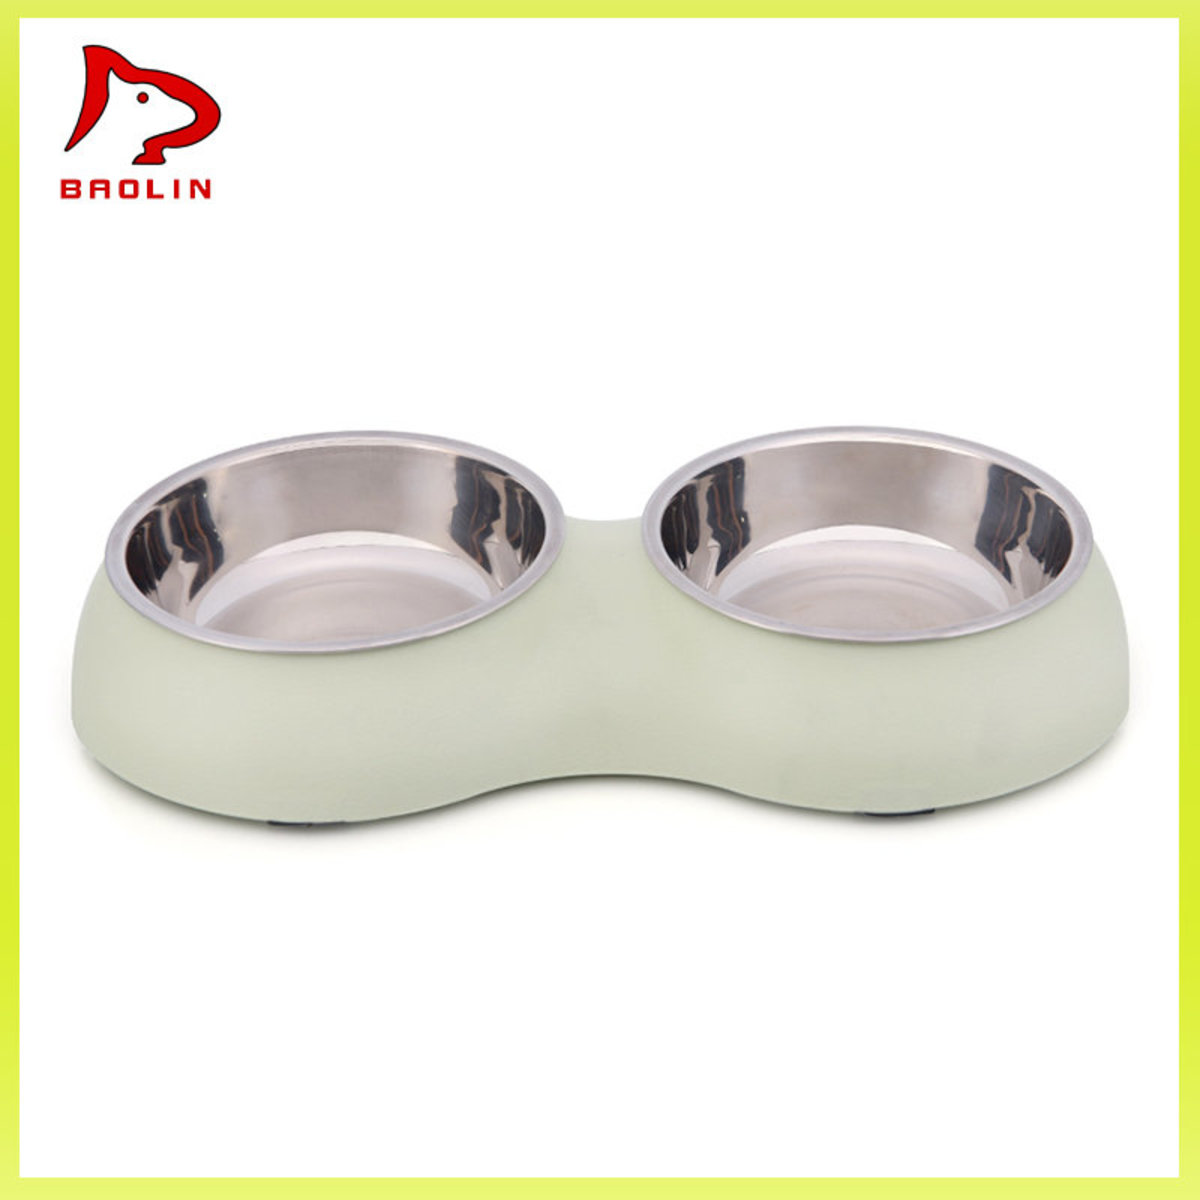 Macaron Style Double Bowl - Stainless Steel